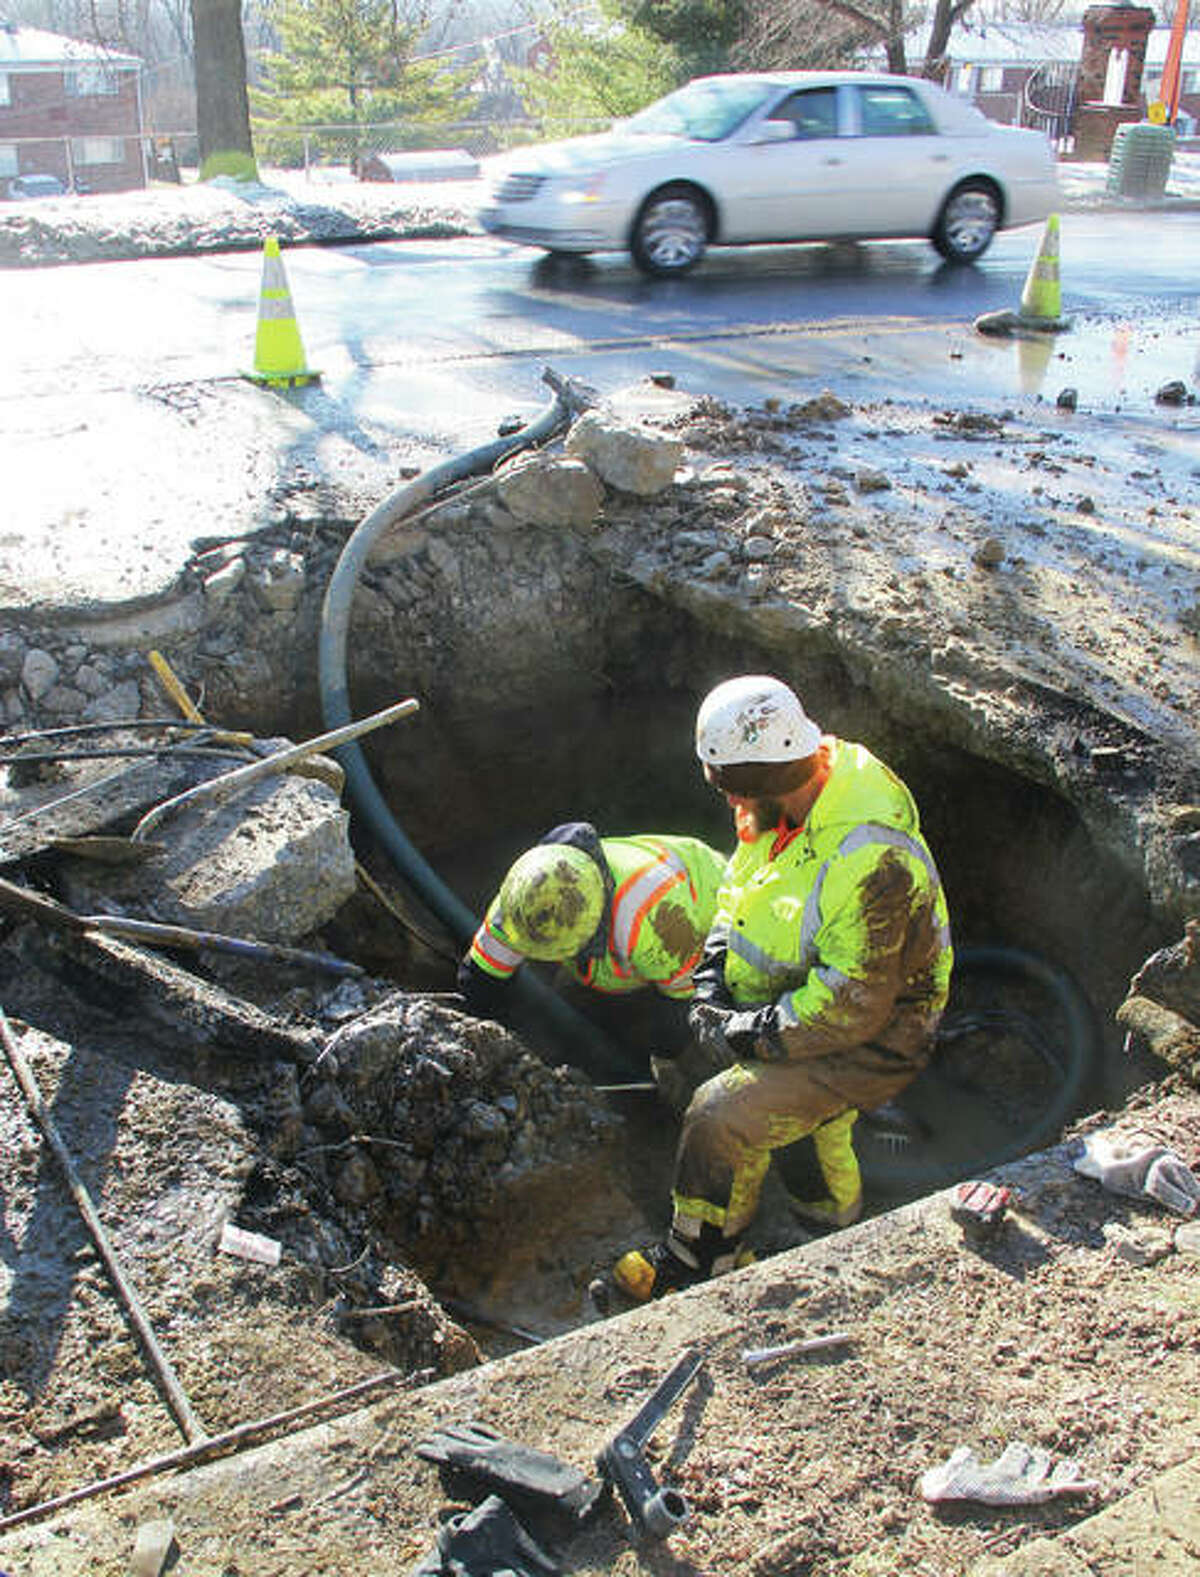 A car goes by as Illinois American Water workers Matt Knight, left, and Brett Becherer work on a water main break on Washington Avenue. Two large breaks were reported Tuesday night and Wednesday morning.